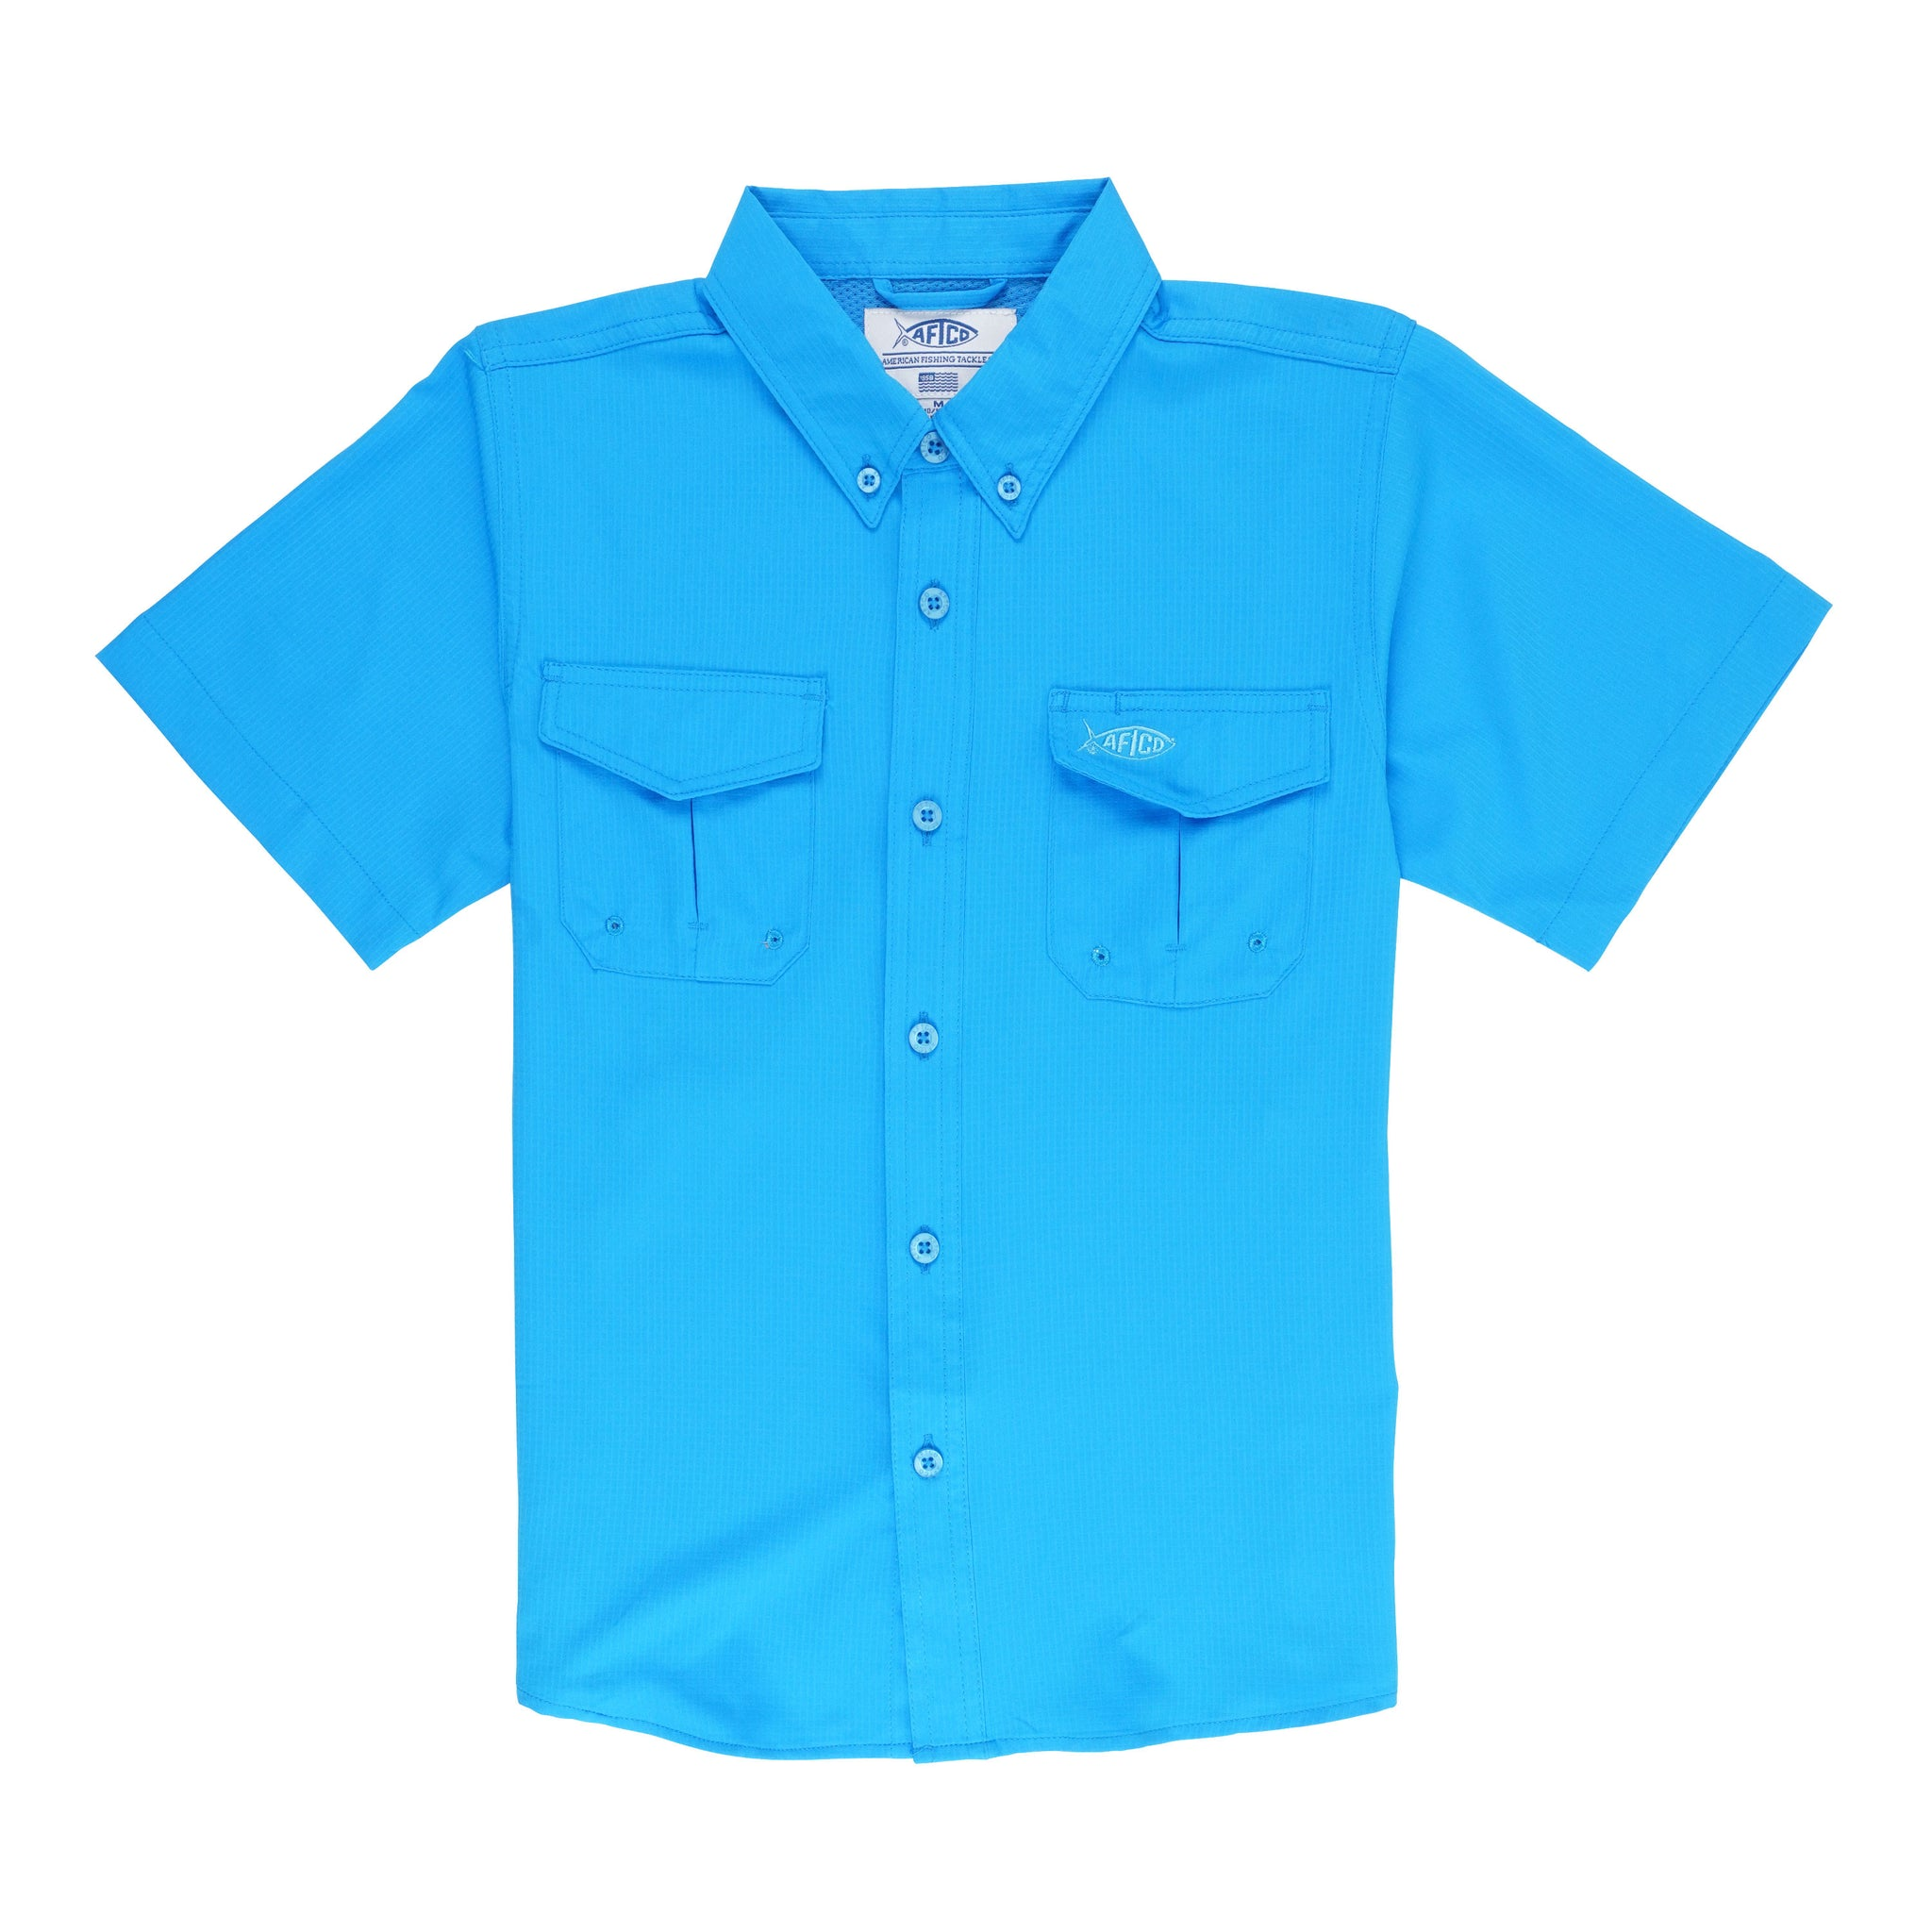 YOUTH RANGLE SS TECH SHIRT